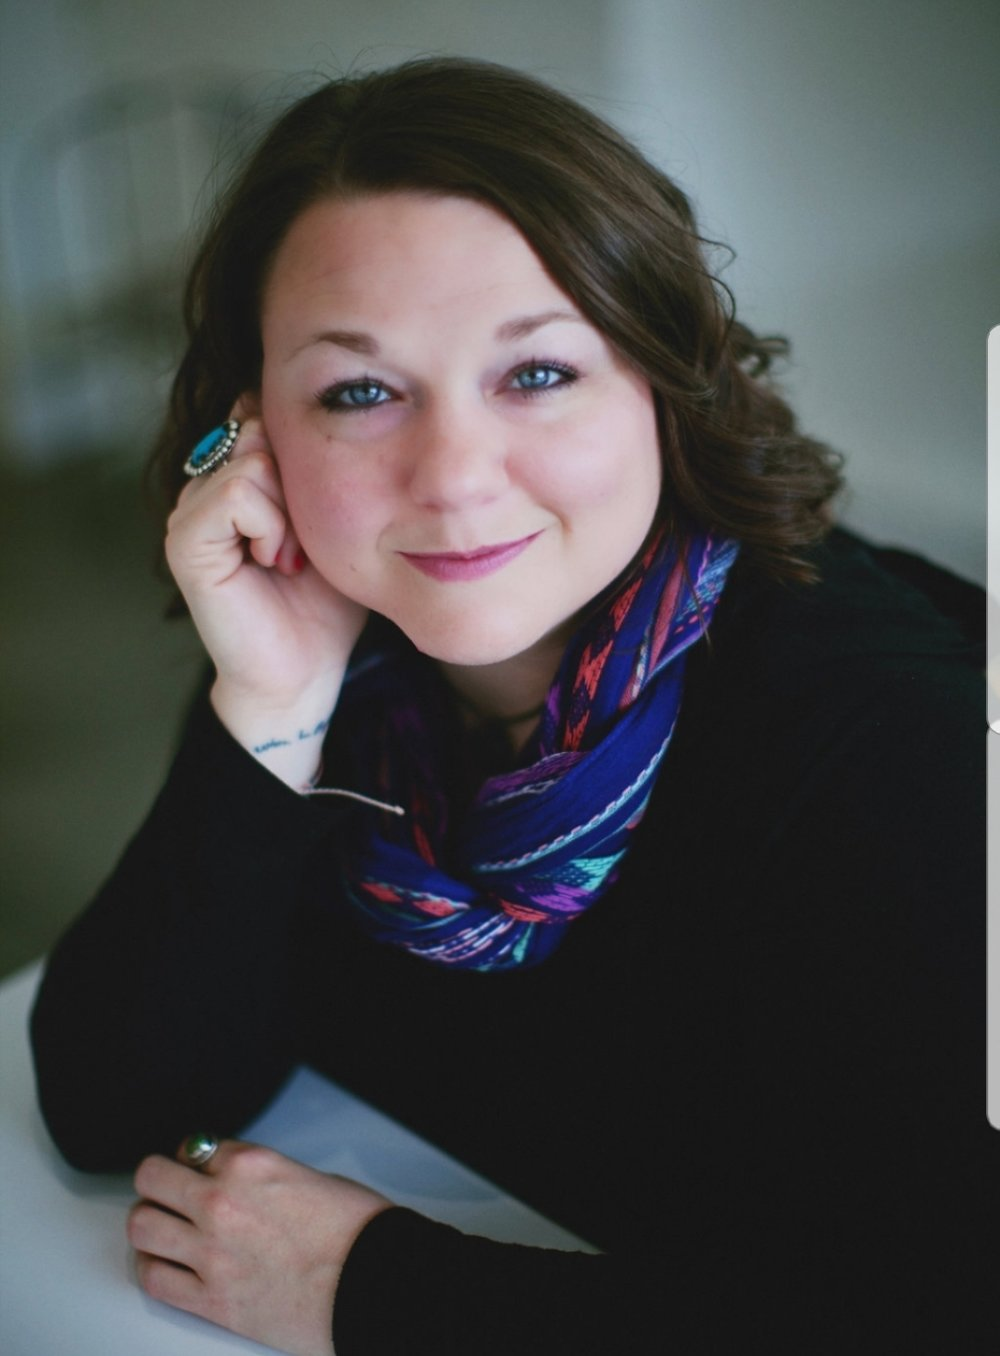 About The Author - Sara Fort, Owner of Neat ReliefSara Fort has dedicated her life to assisting her clients in creating functional, intentional spaces by removing the superfluous. Streamlining and curating each room to simplify every day tasks.